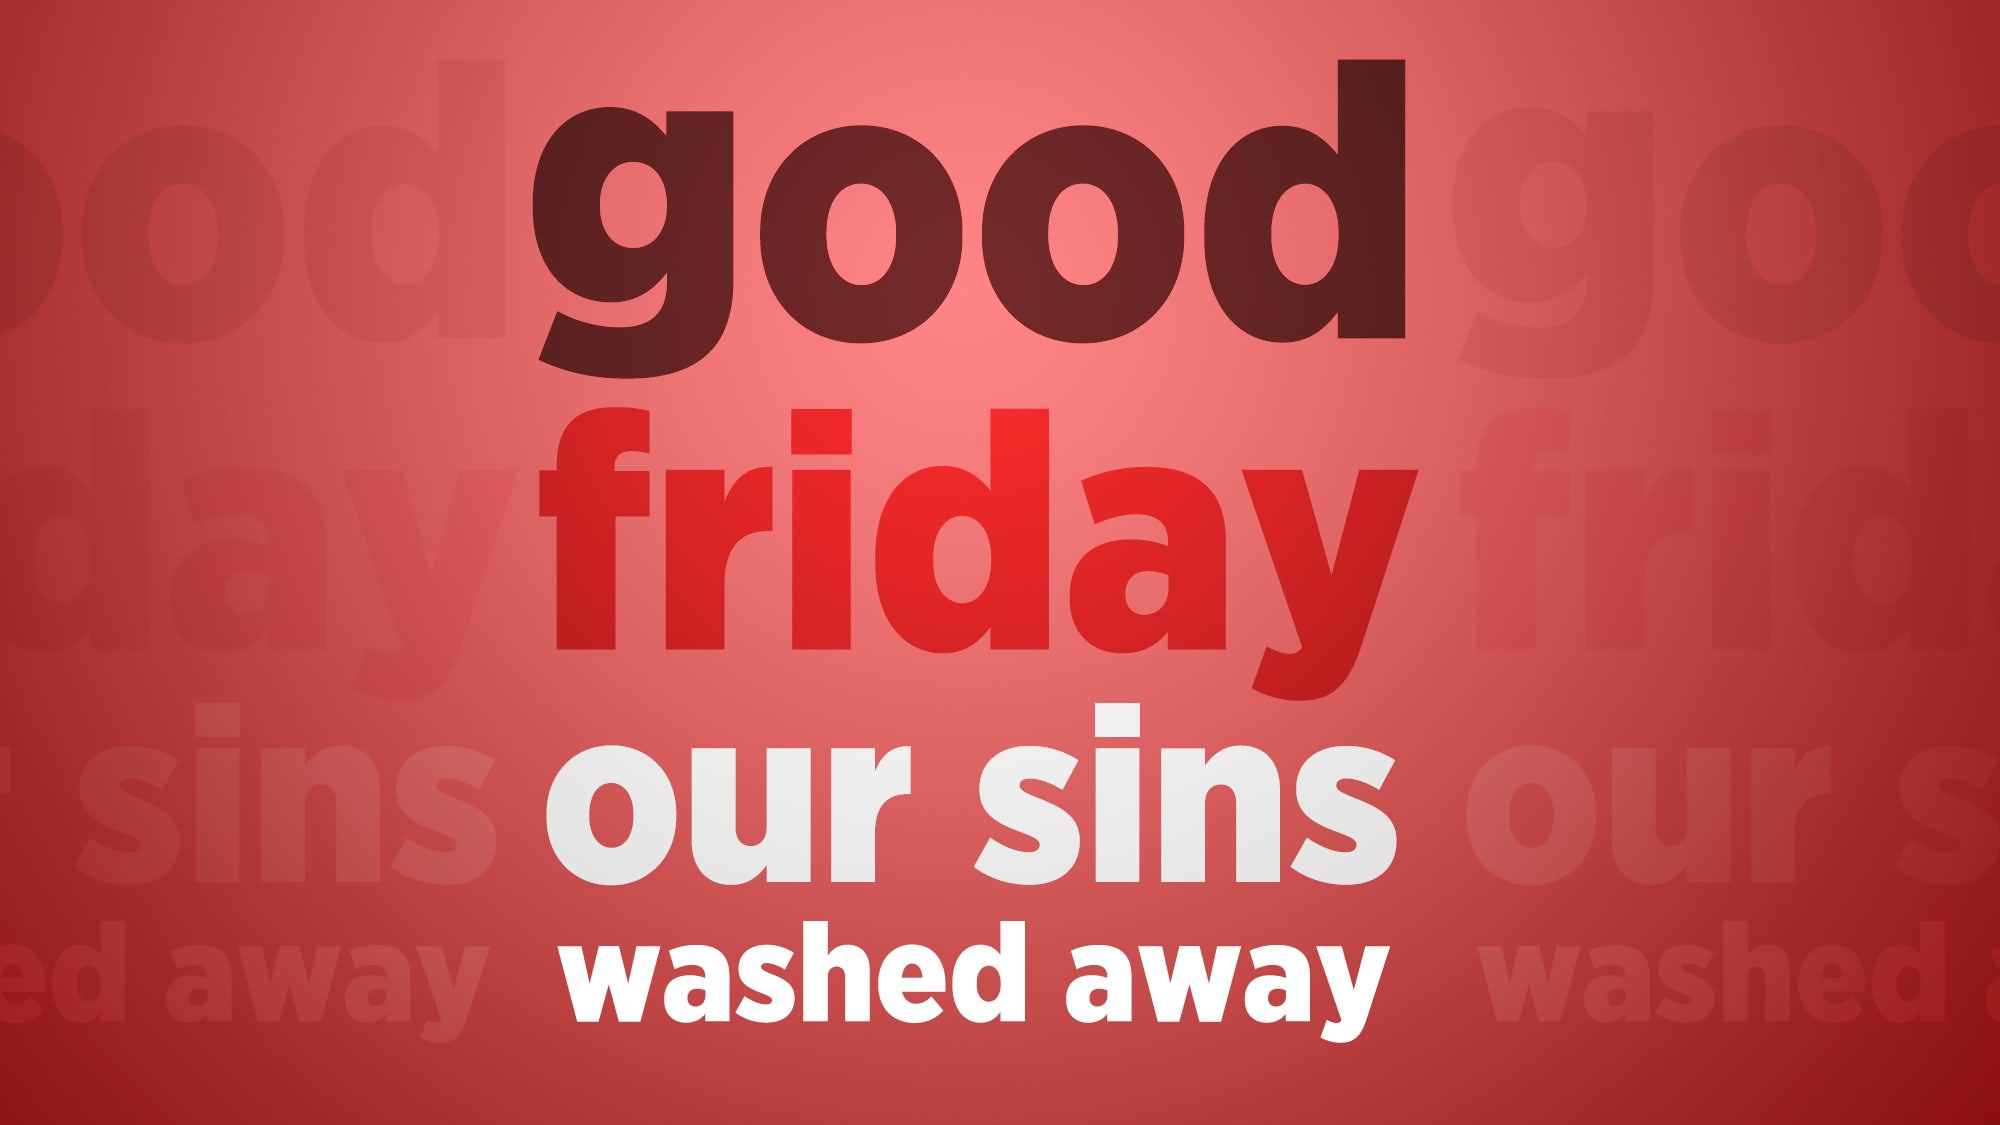 Good Friday Our Sins Washed Away